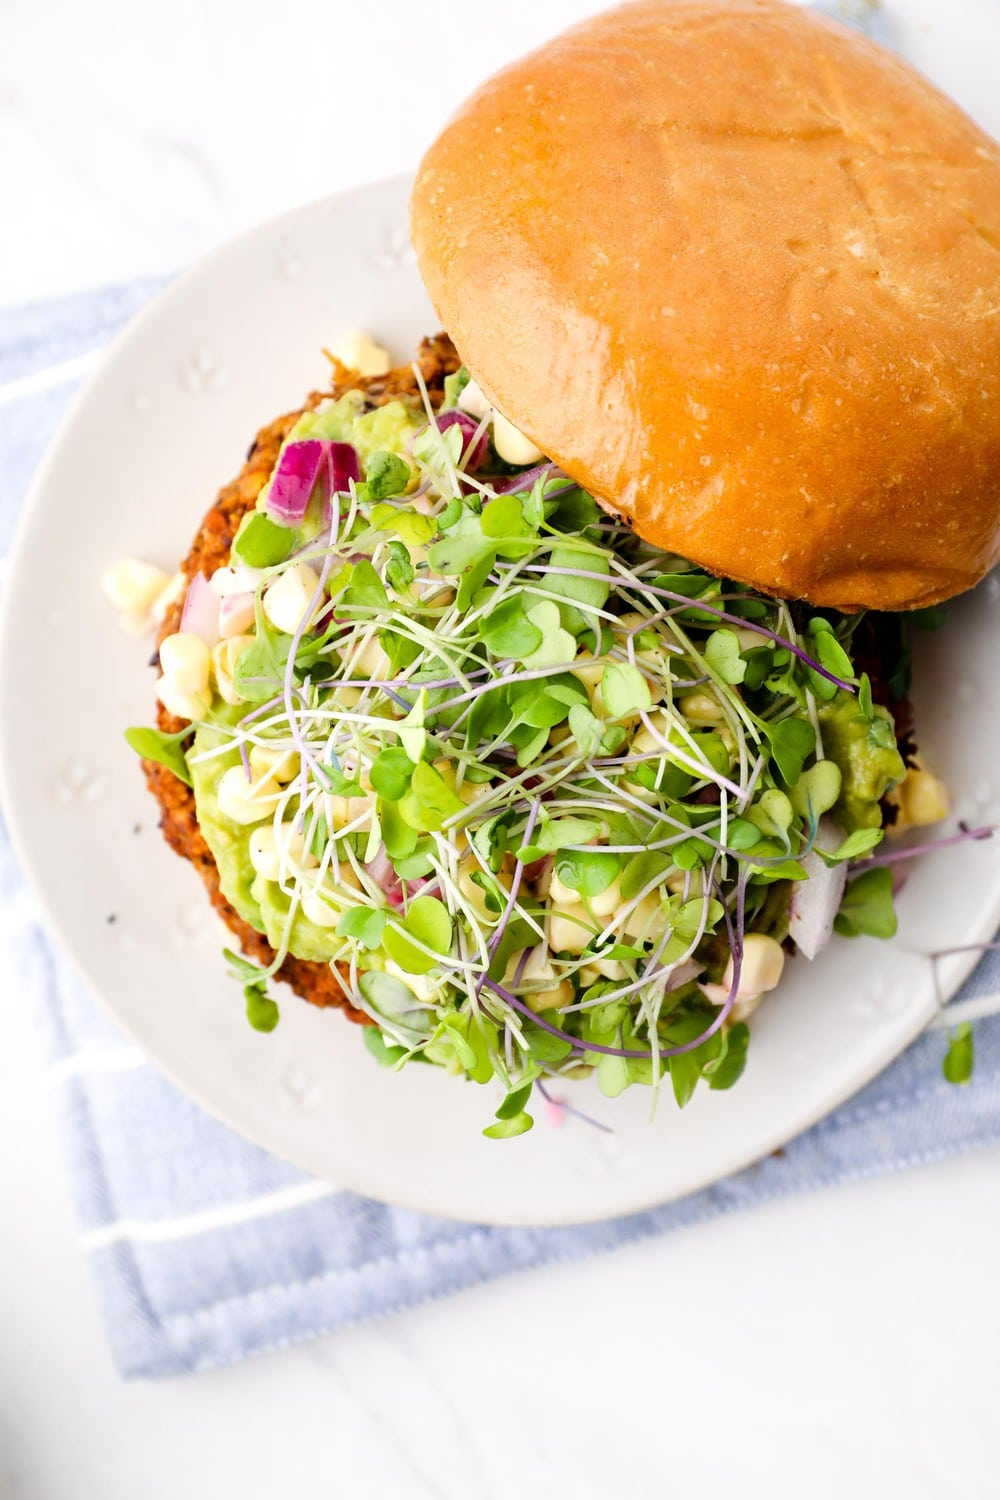 A California Burger veggie patty with sprouts.